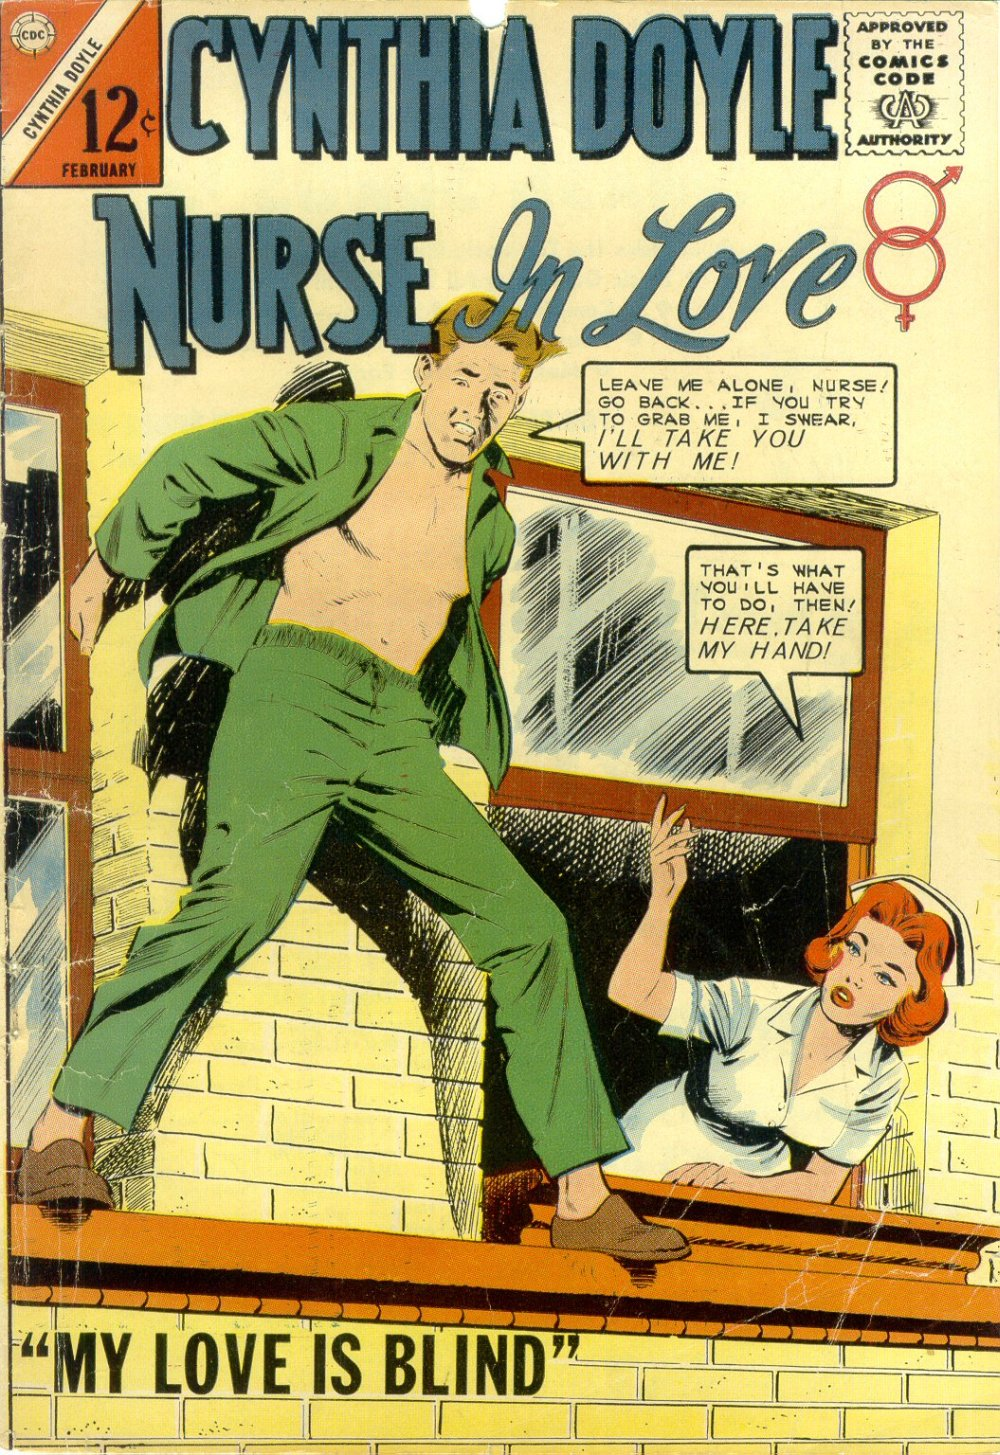 Cynthia Doyle – Nurse in Love [UNKNOWN] V1 0074.jpg